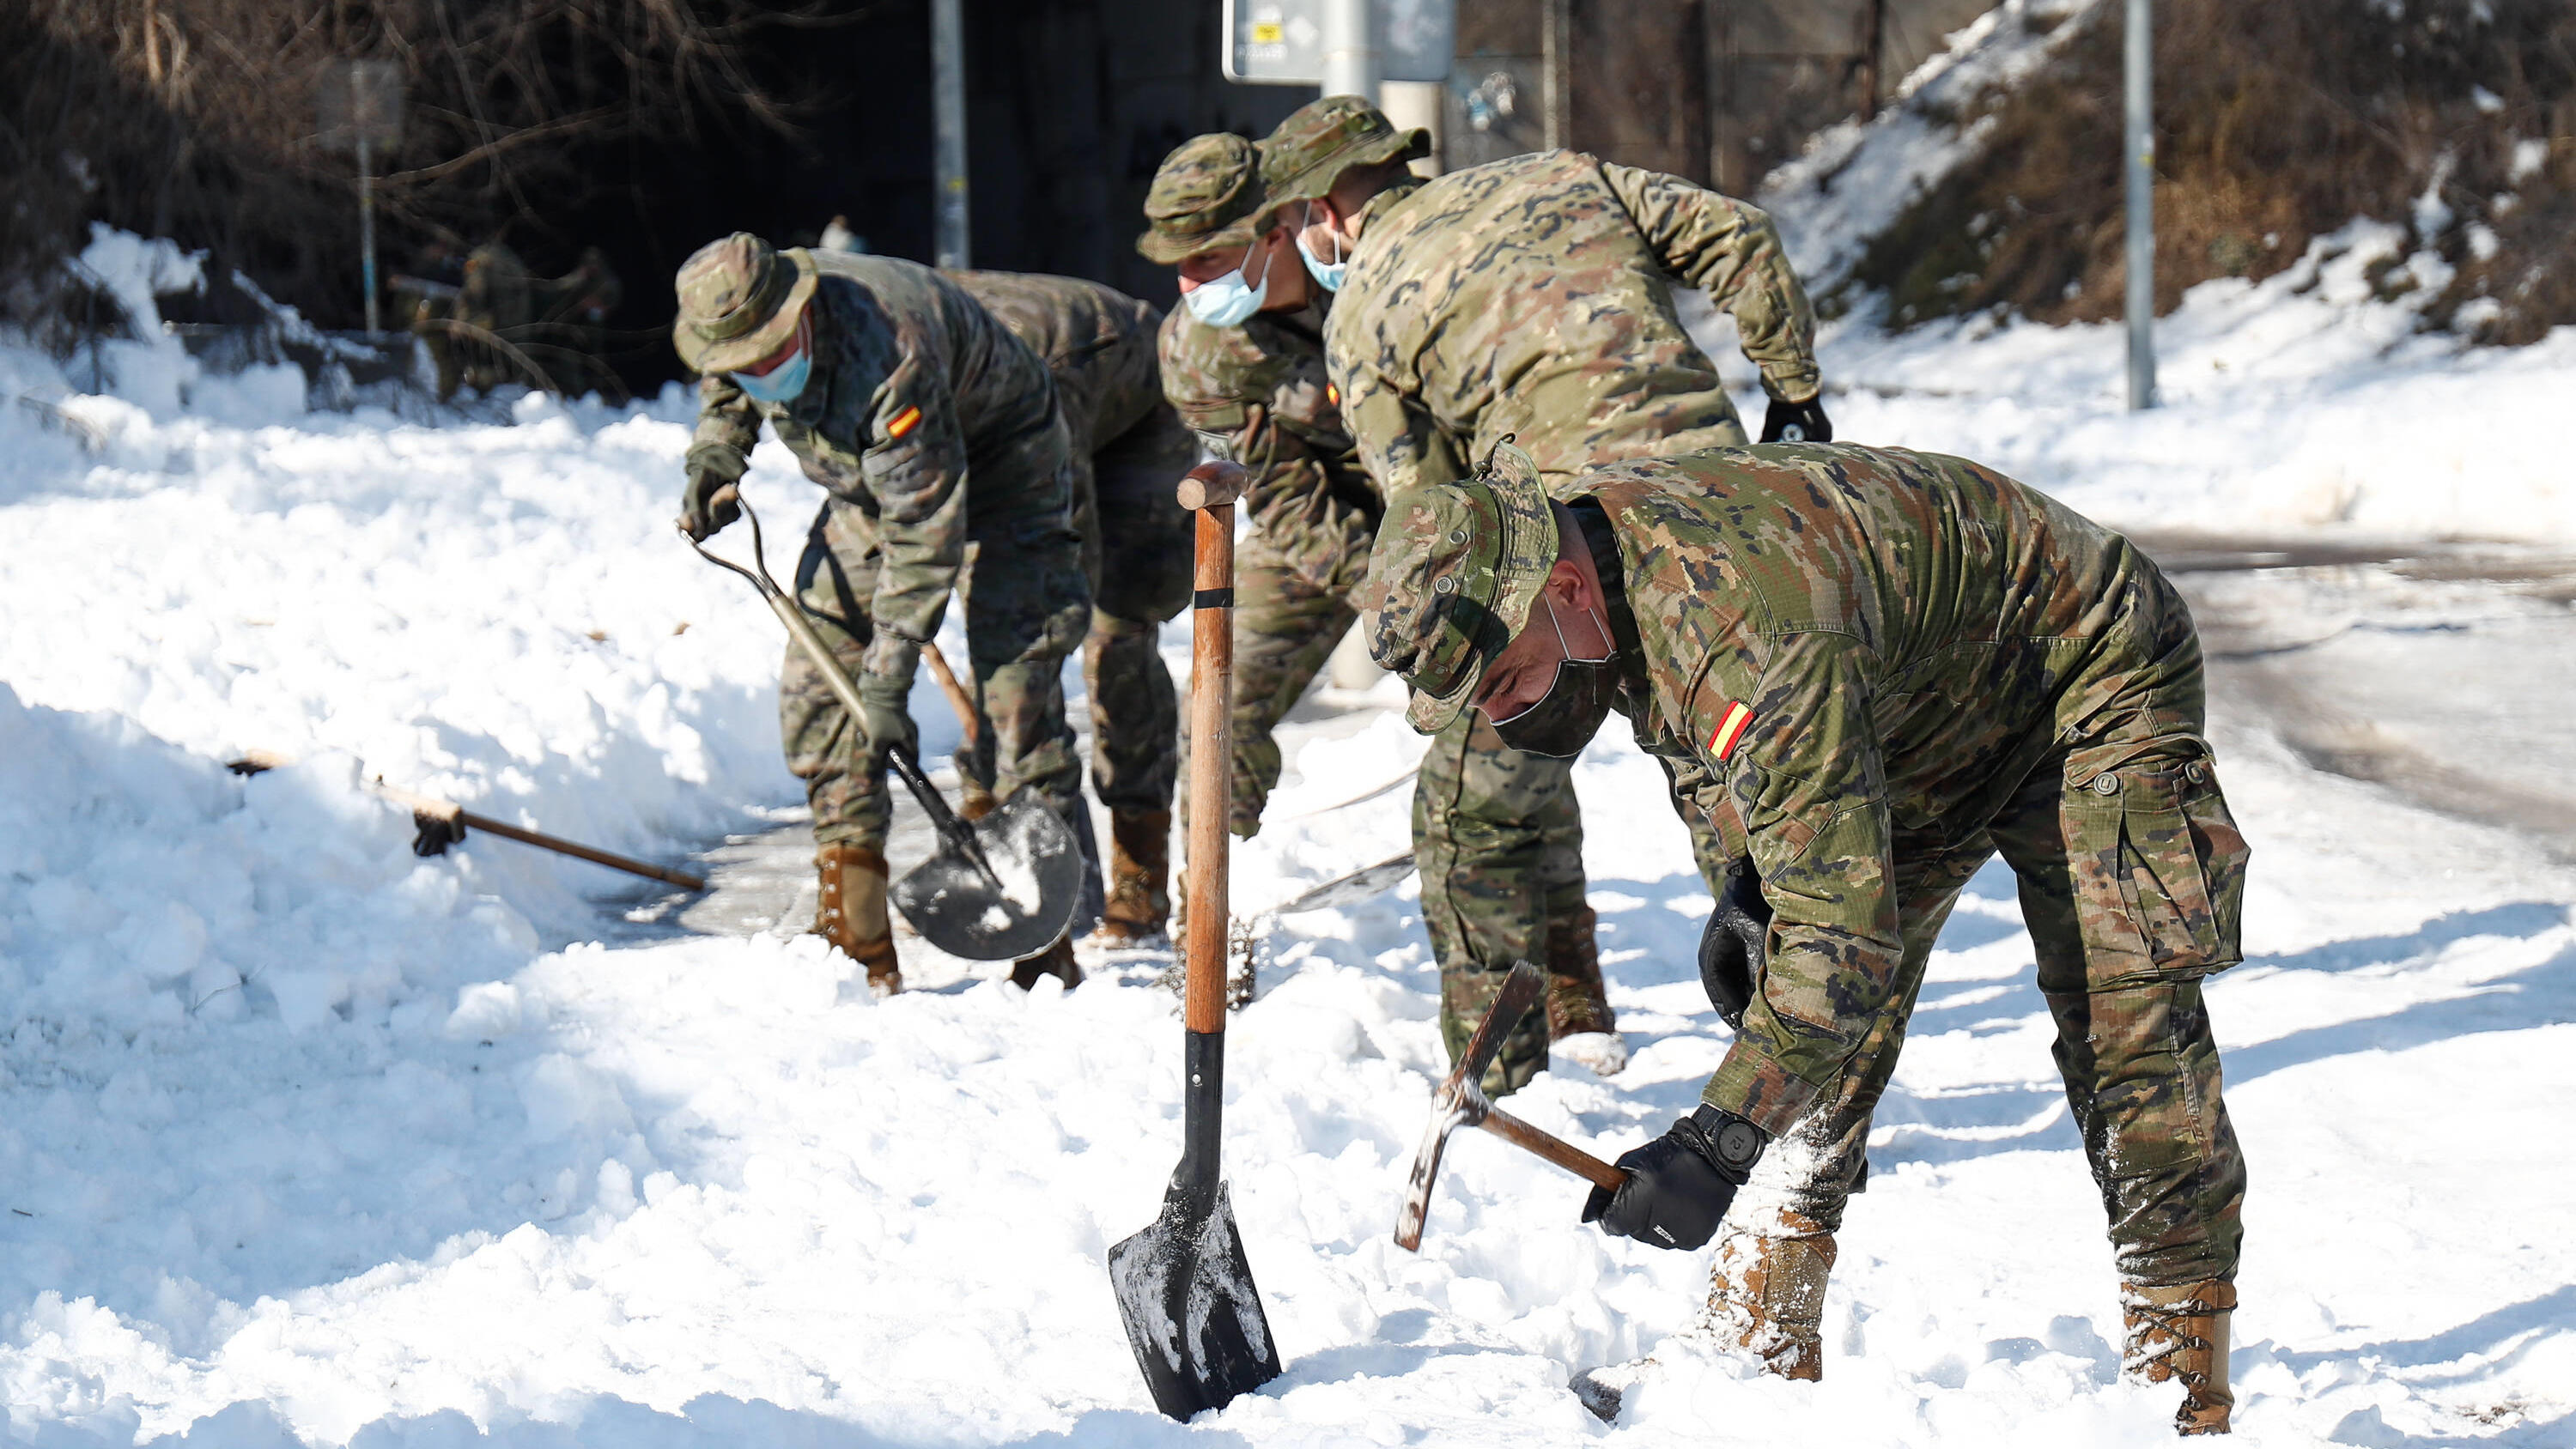 January 15, 2021, Valdemoro, MADRID, SPAIN: Military personnel from Spanish Army carry out snow removal work at the Fuente de la Villa School due to the snowstorm Filomena on January 15, 2021 in Valdemoro, Madrid, Spain. Valdemoro SPAIN - ZUMAa181 20